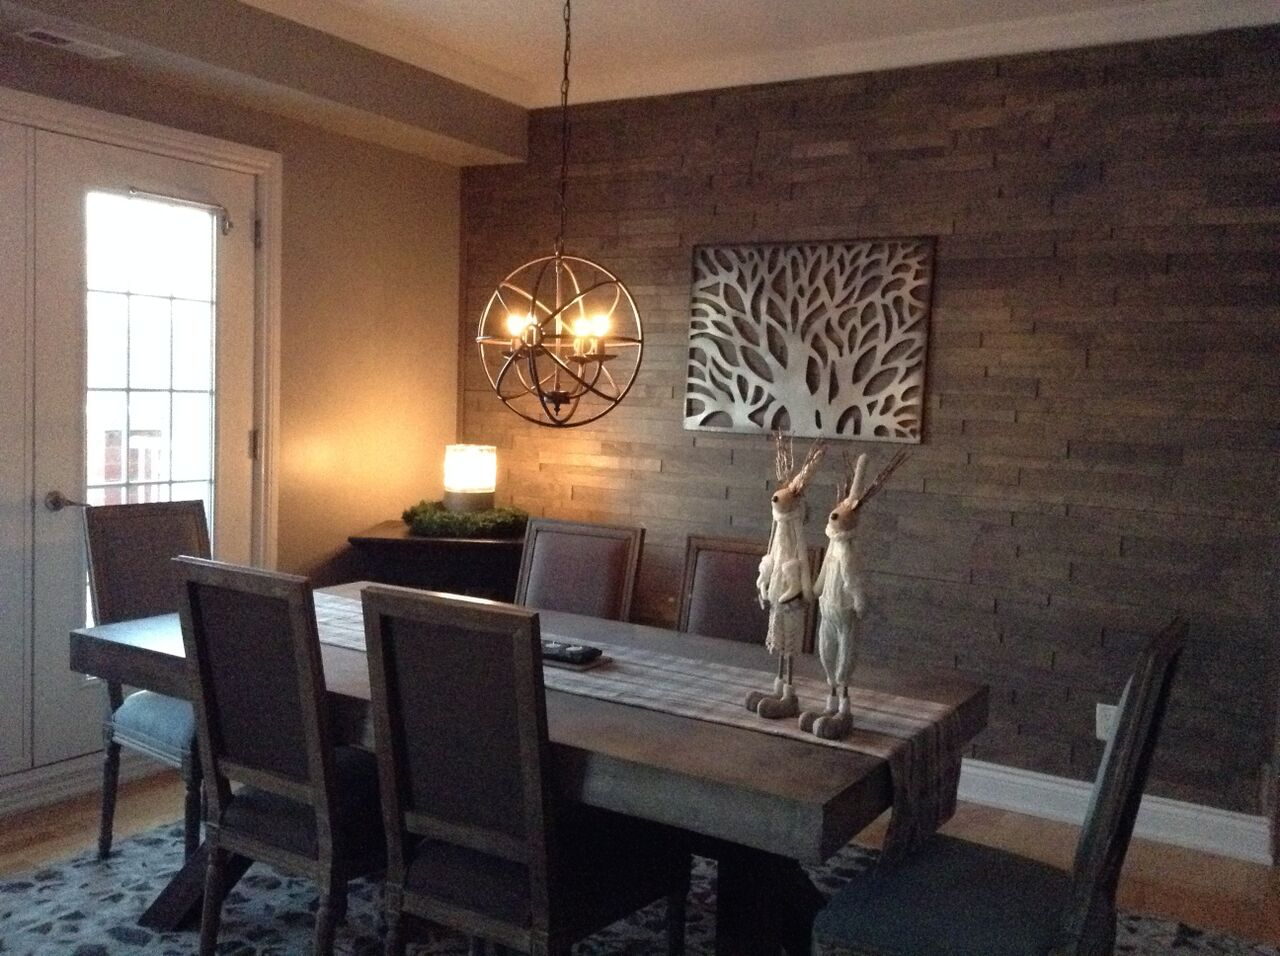 expression denver 3d wood wall panelling installed in a dining roomexpression denver 3d wood wall panelling installed in a dining room as a feature wall